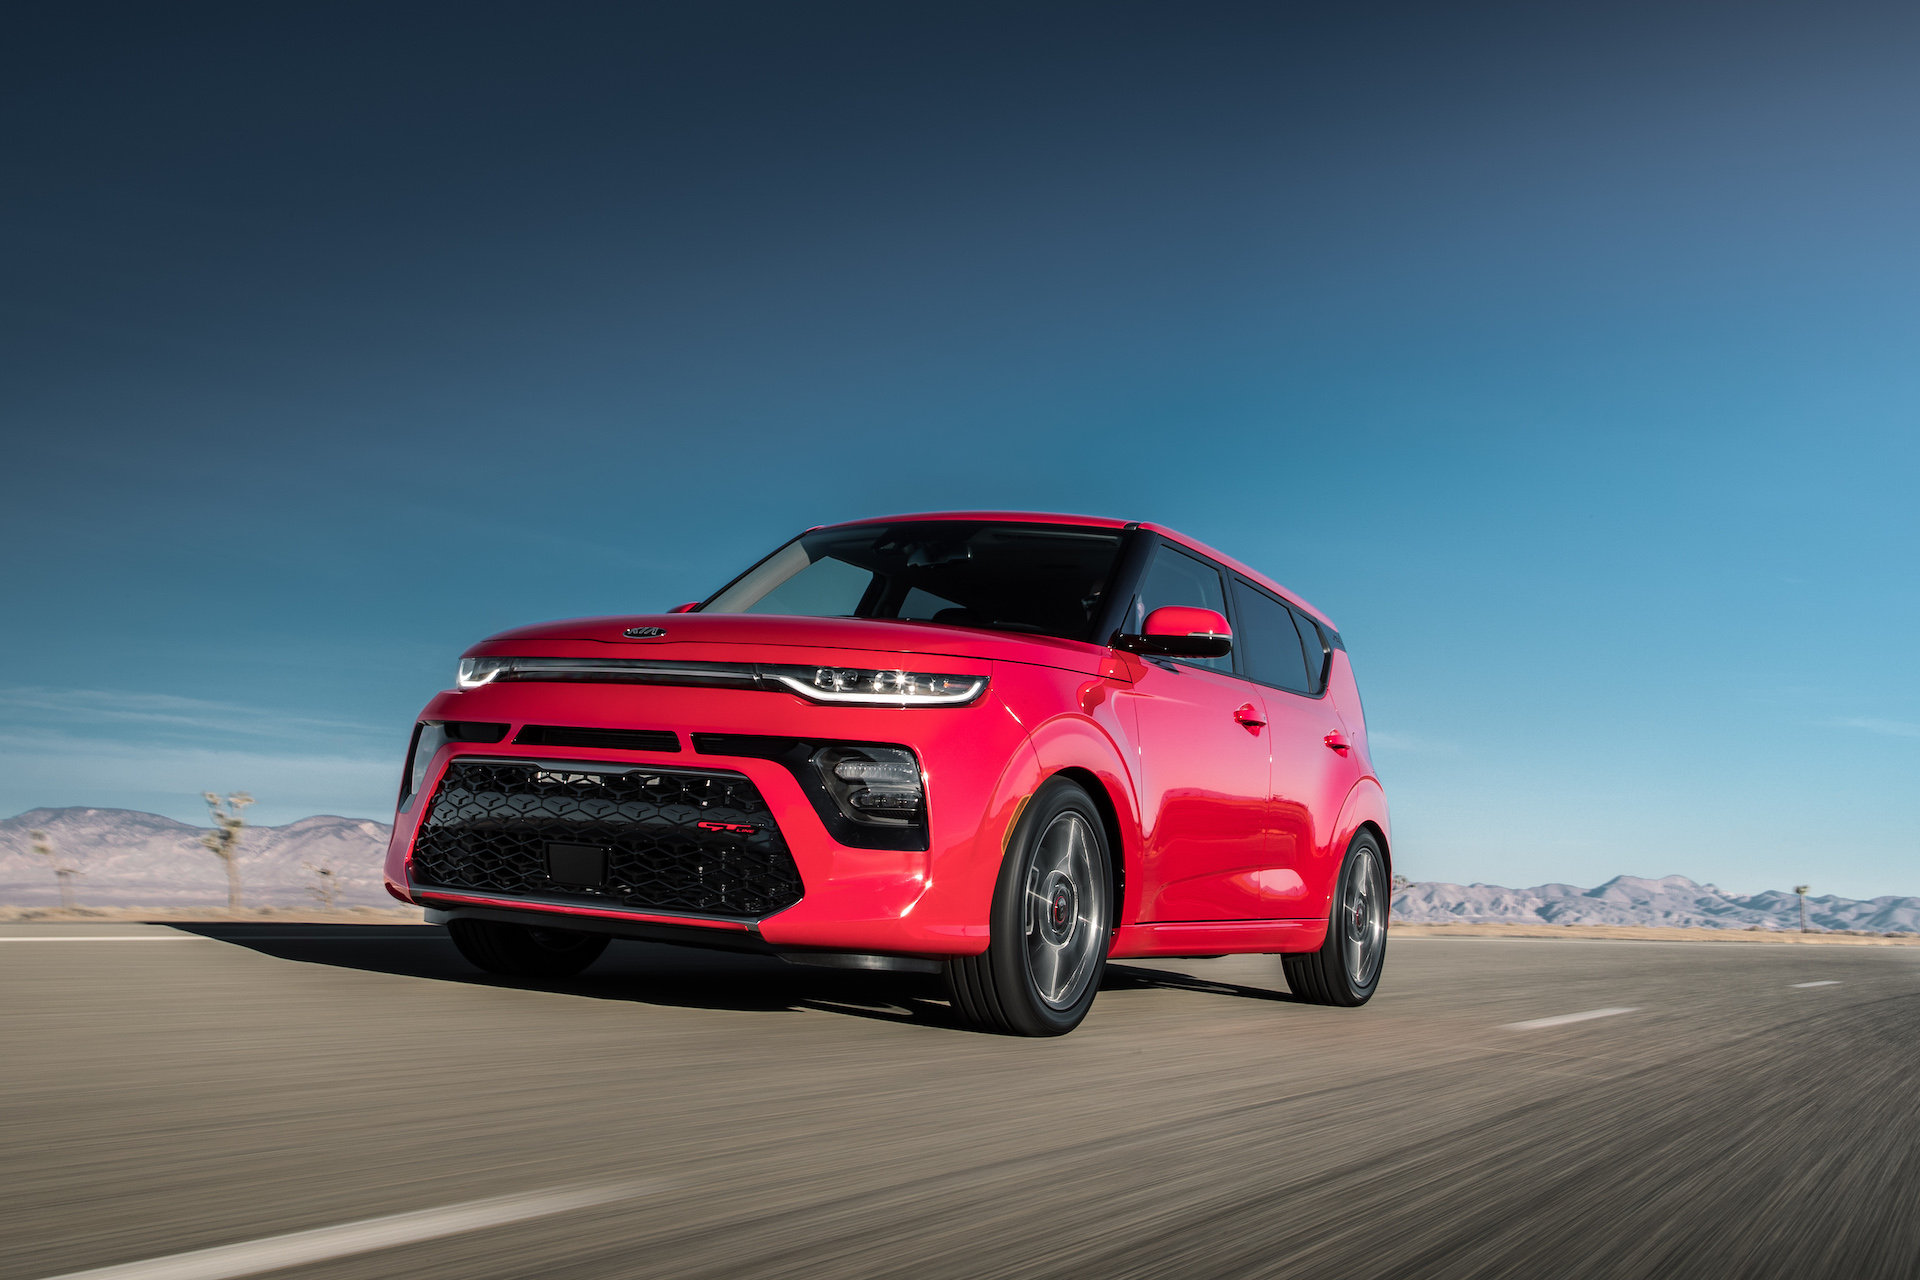 2020 Kia Soul Review, Ratings, Specs, Prices, and Photos ...